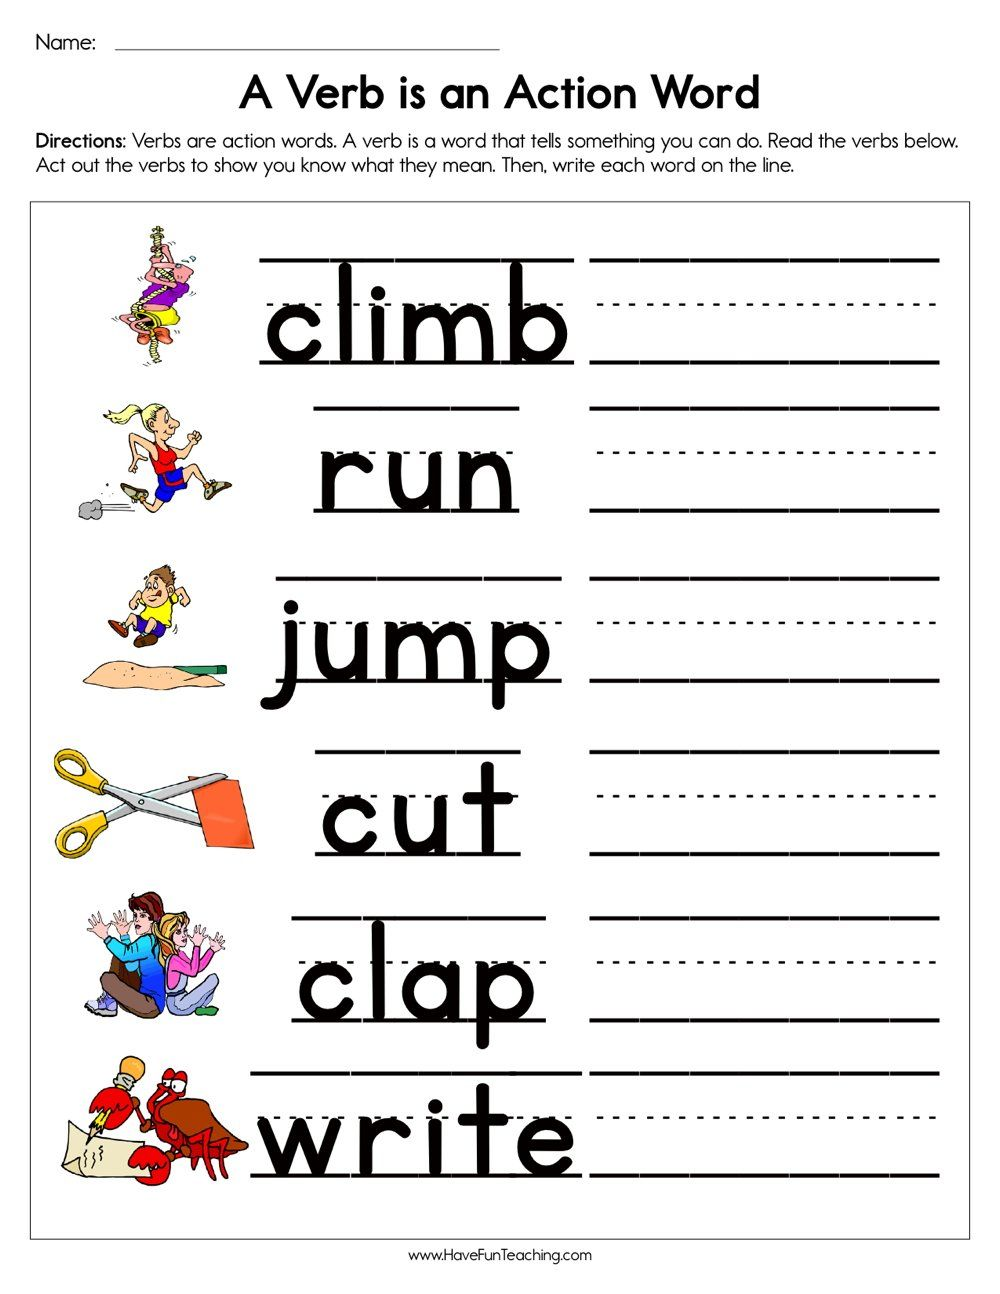 A Verb is an Action Word Worksheet   Action verbs worksheet [ 1294 x 1000 Pixel ]